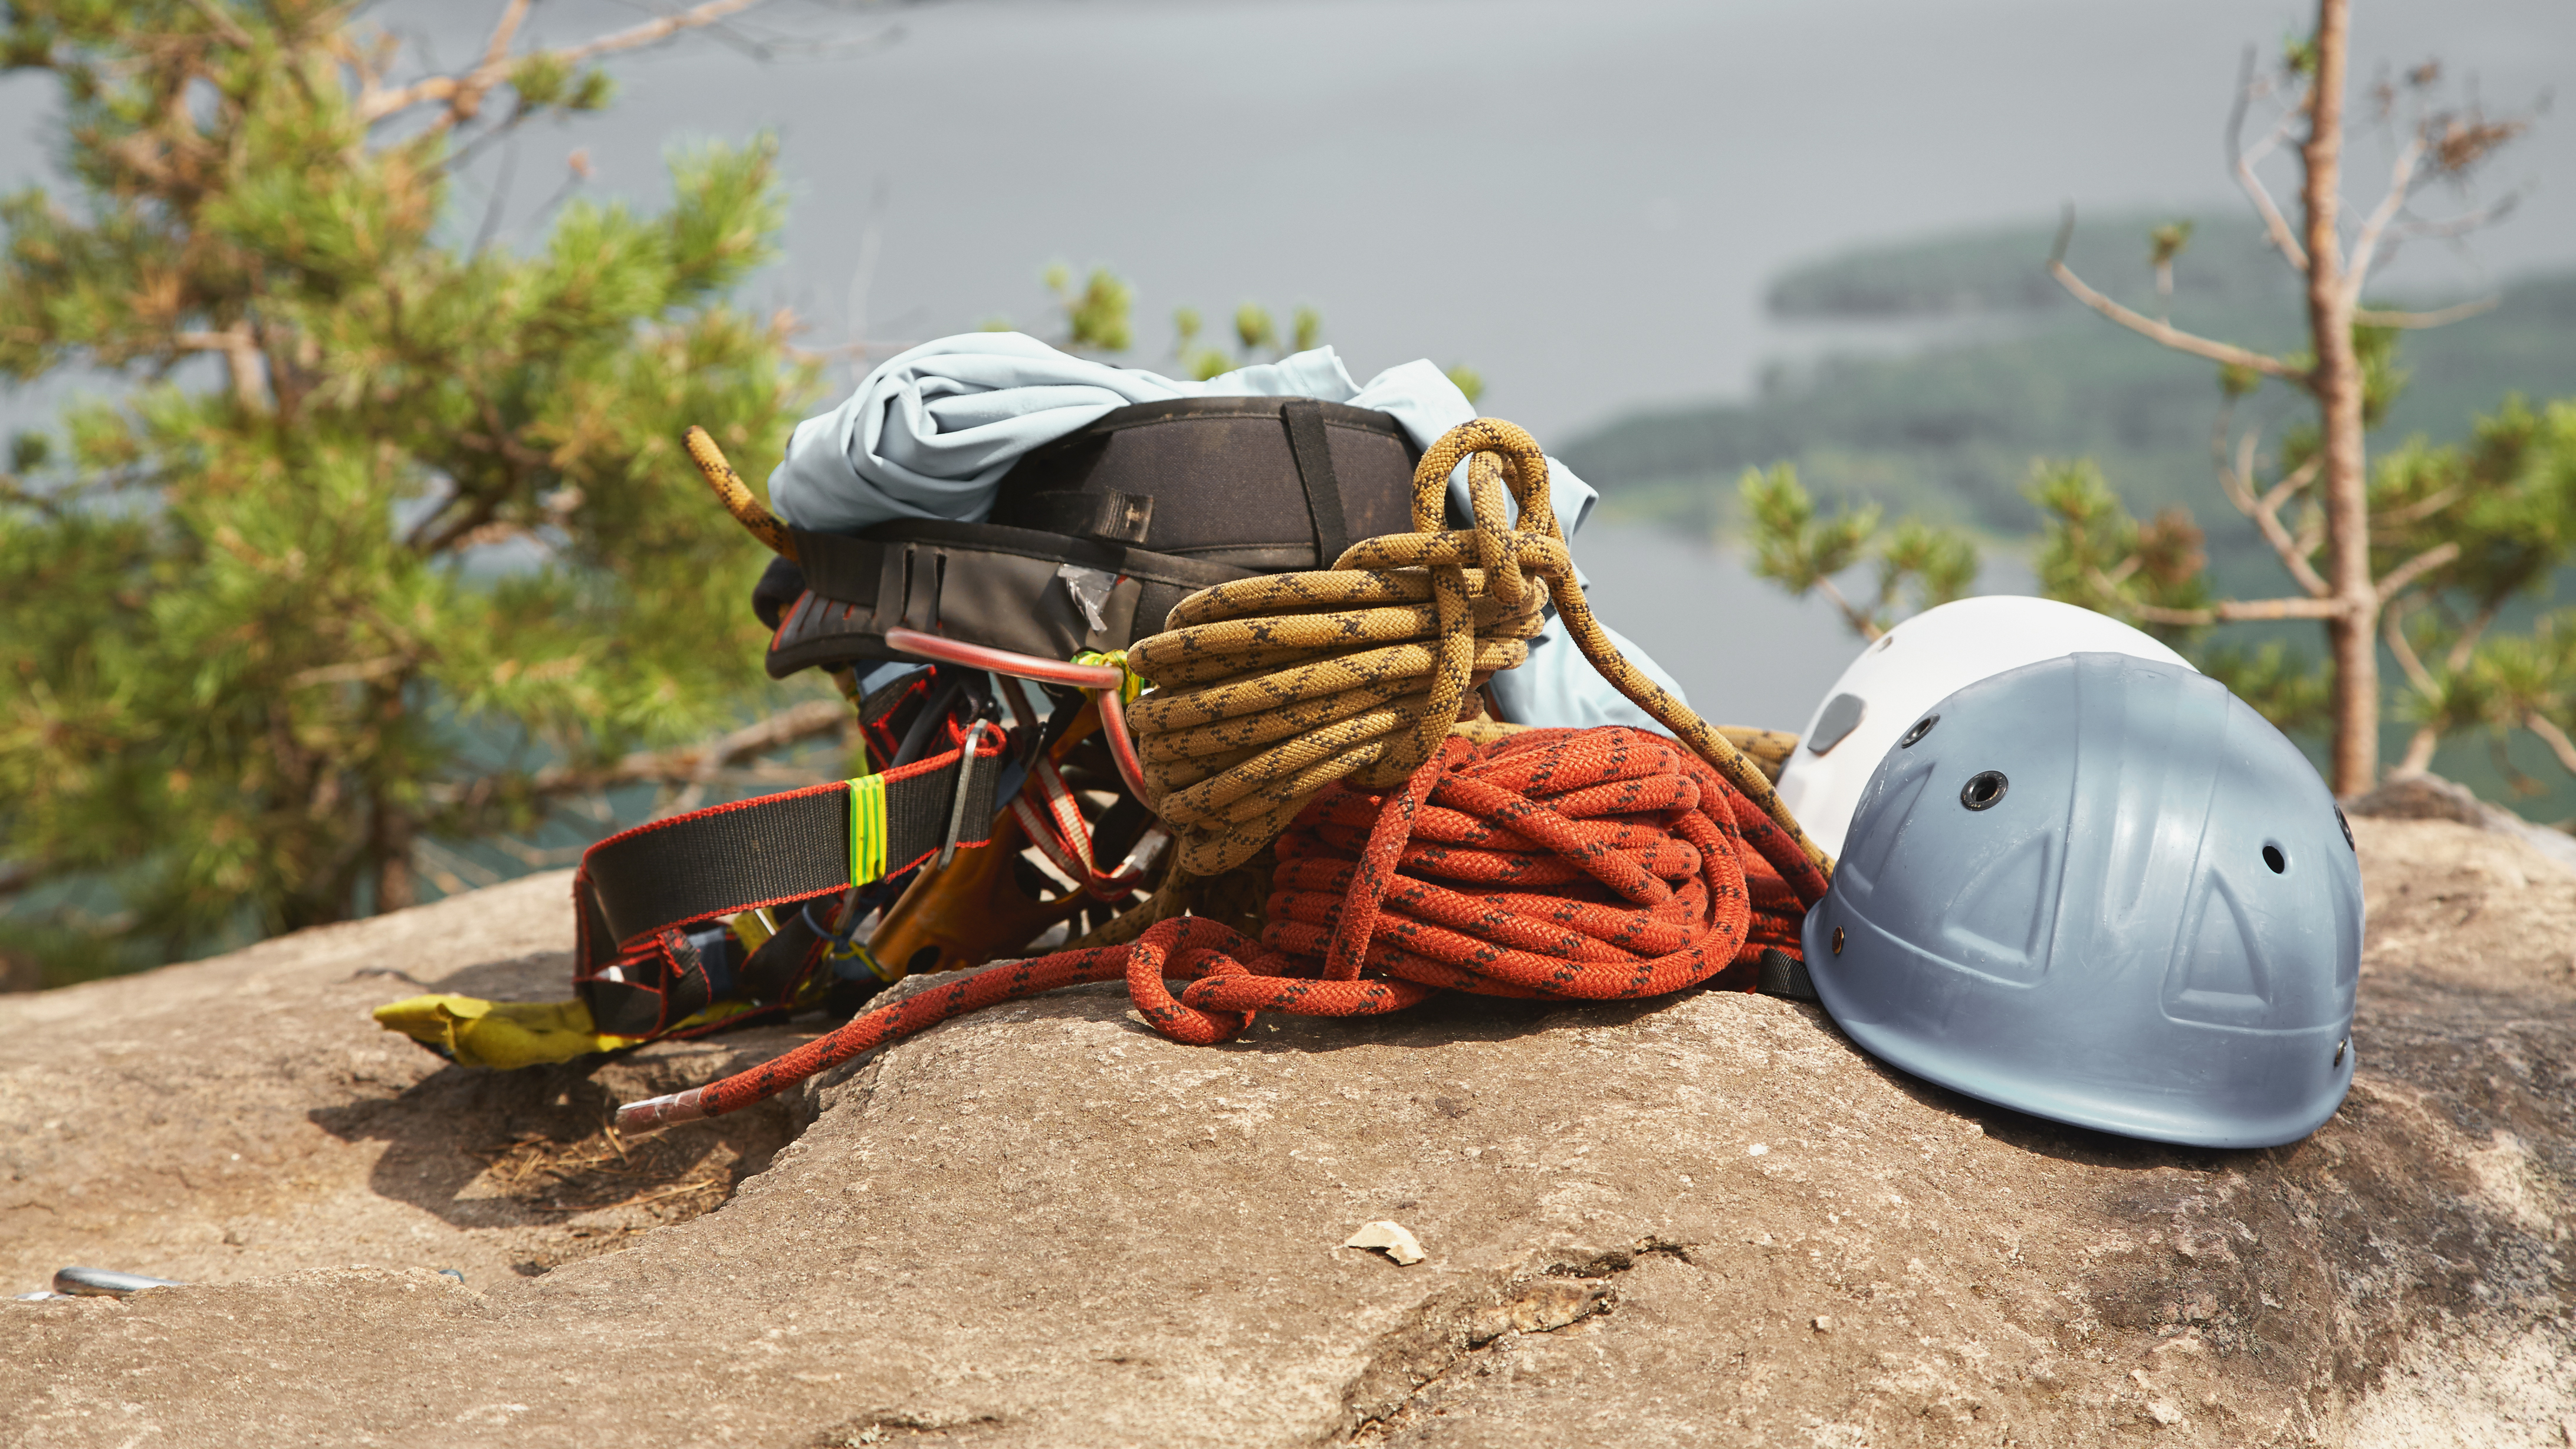 The Right Gear for the Climb